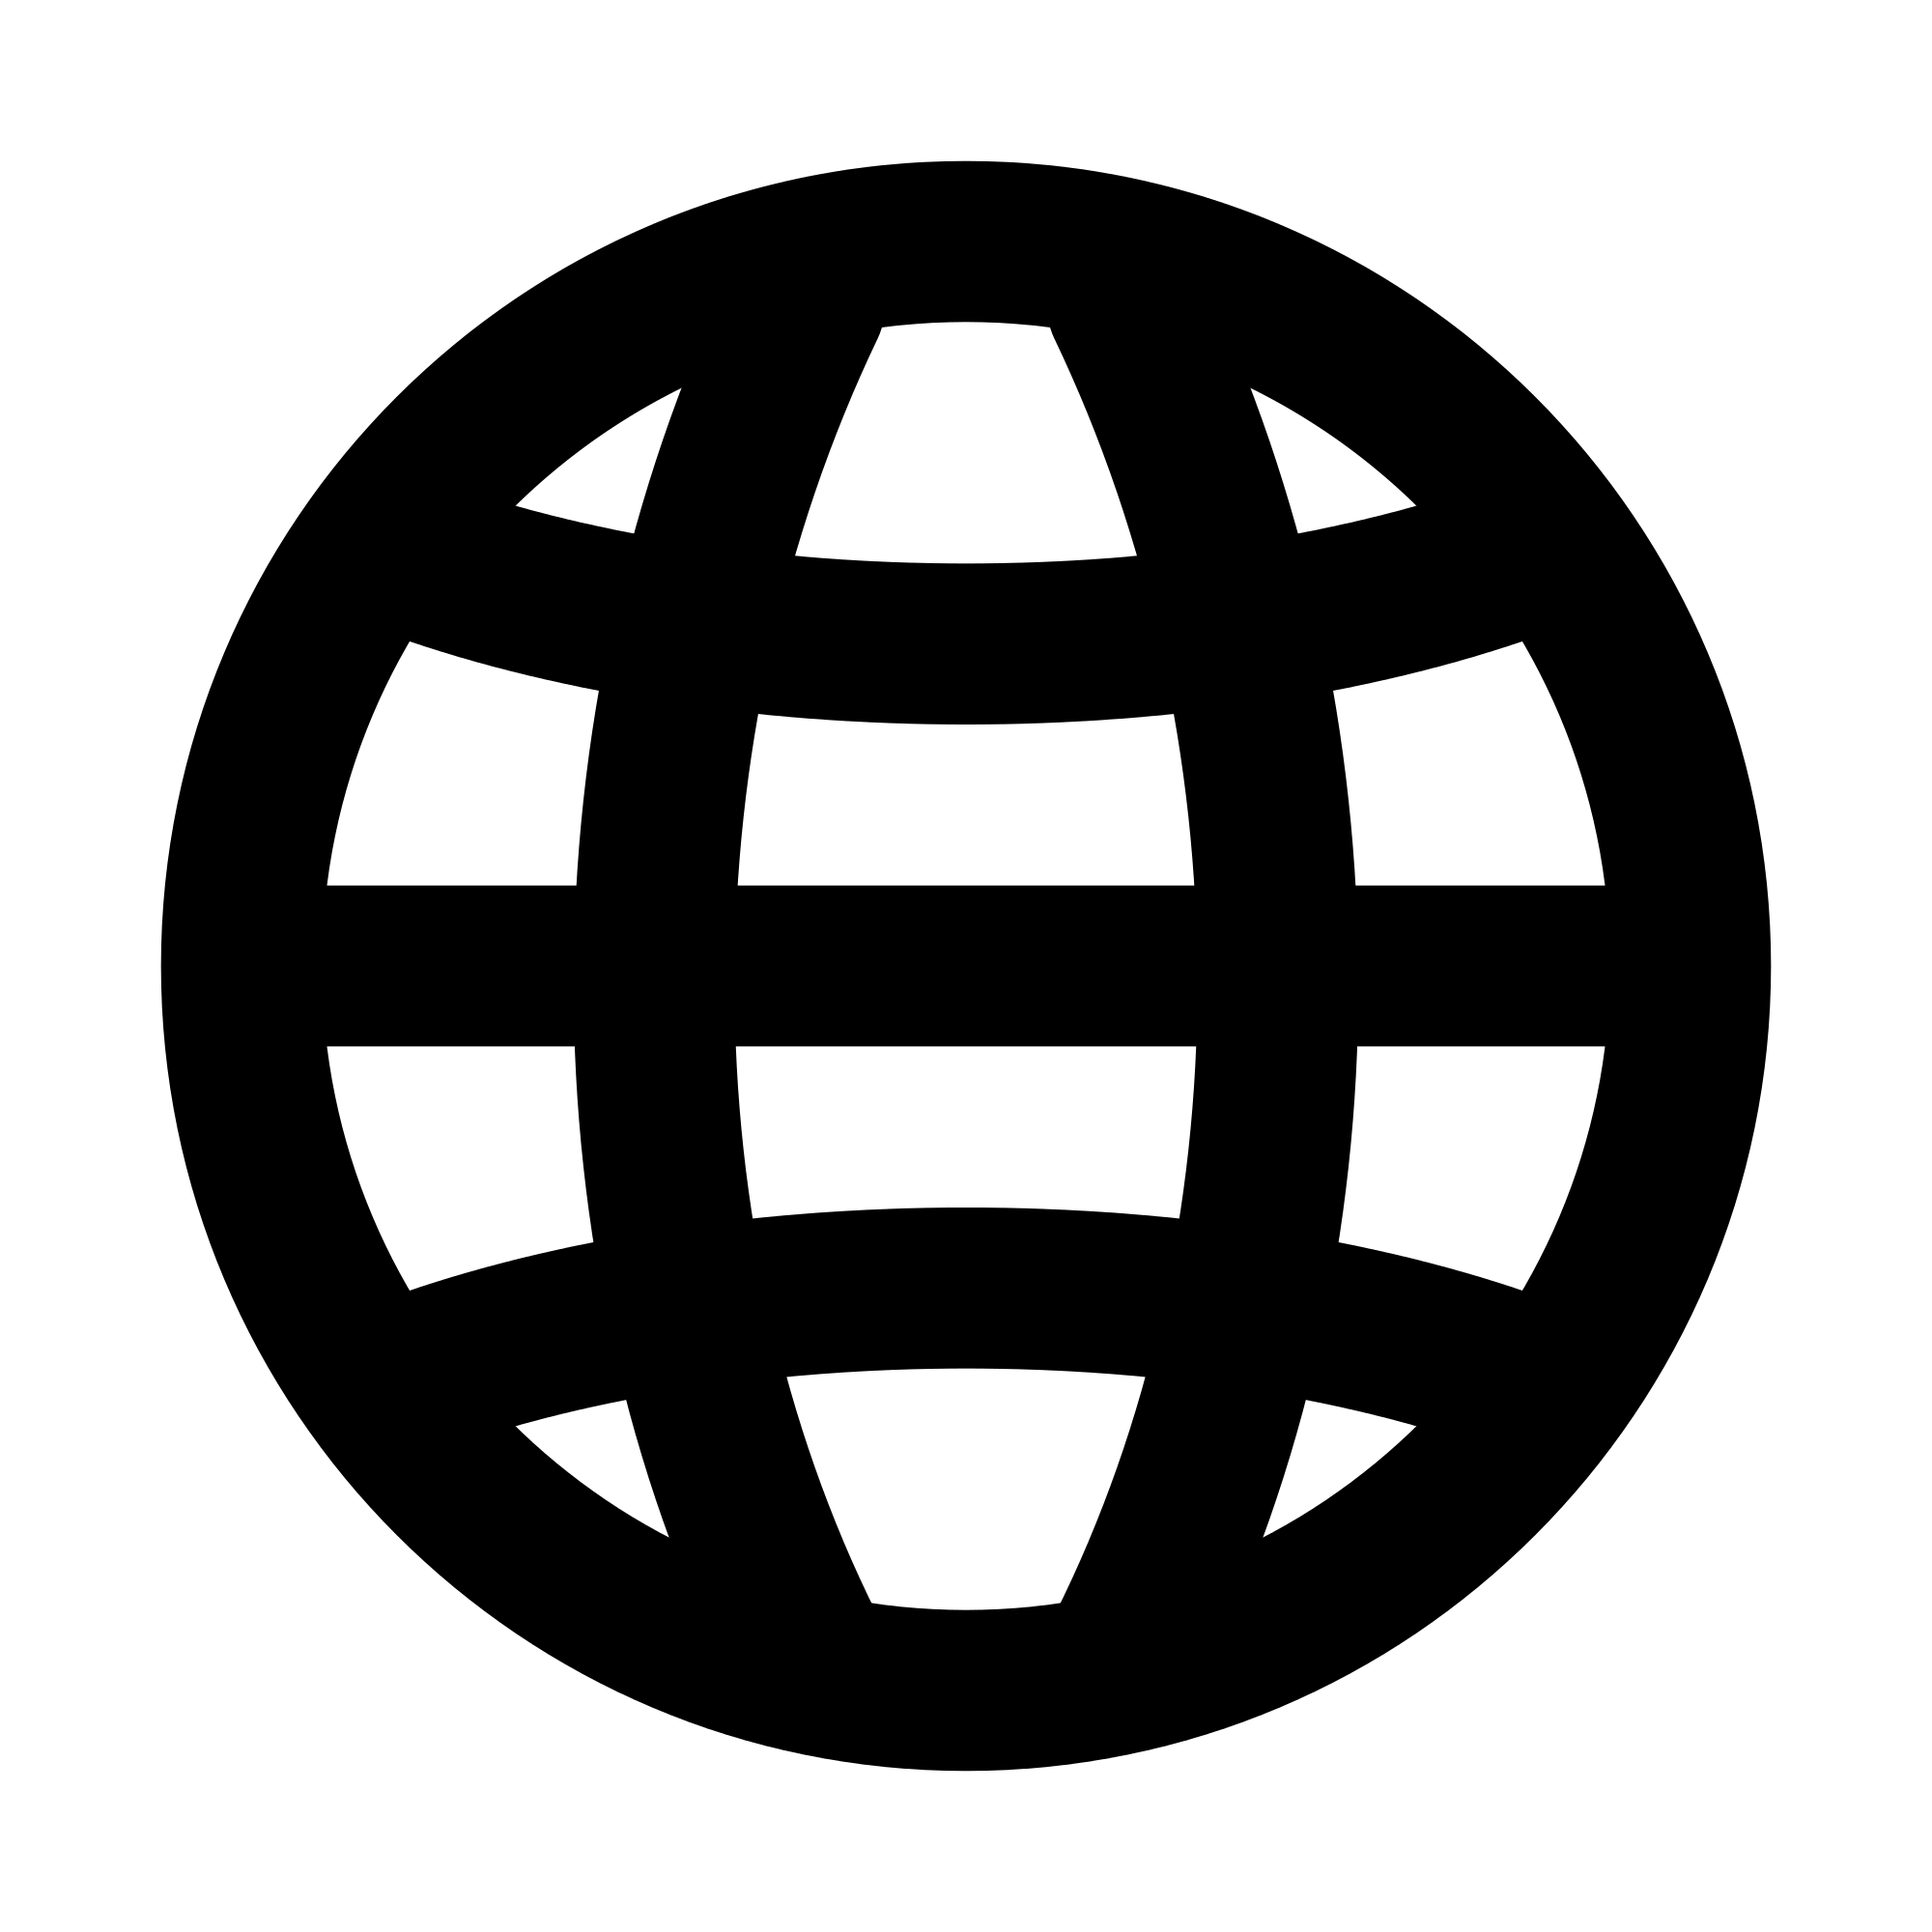 Internet symbol png. File high contrast applications